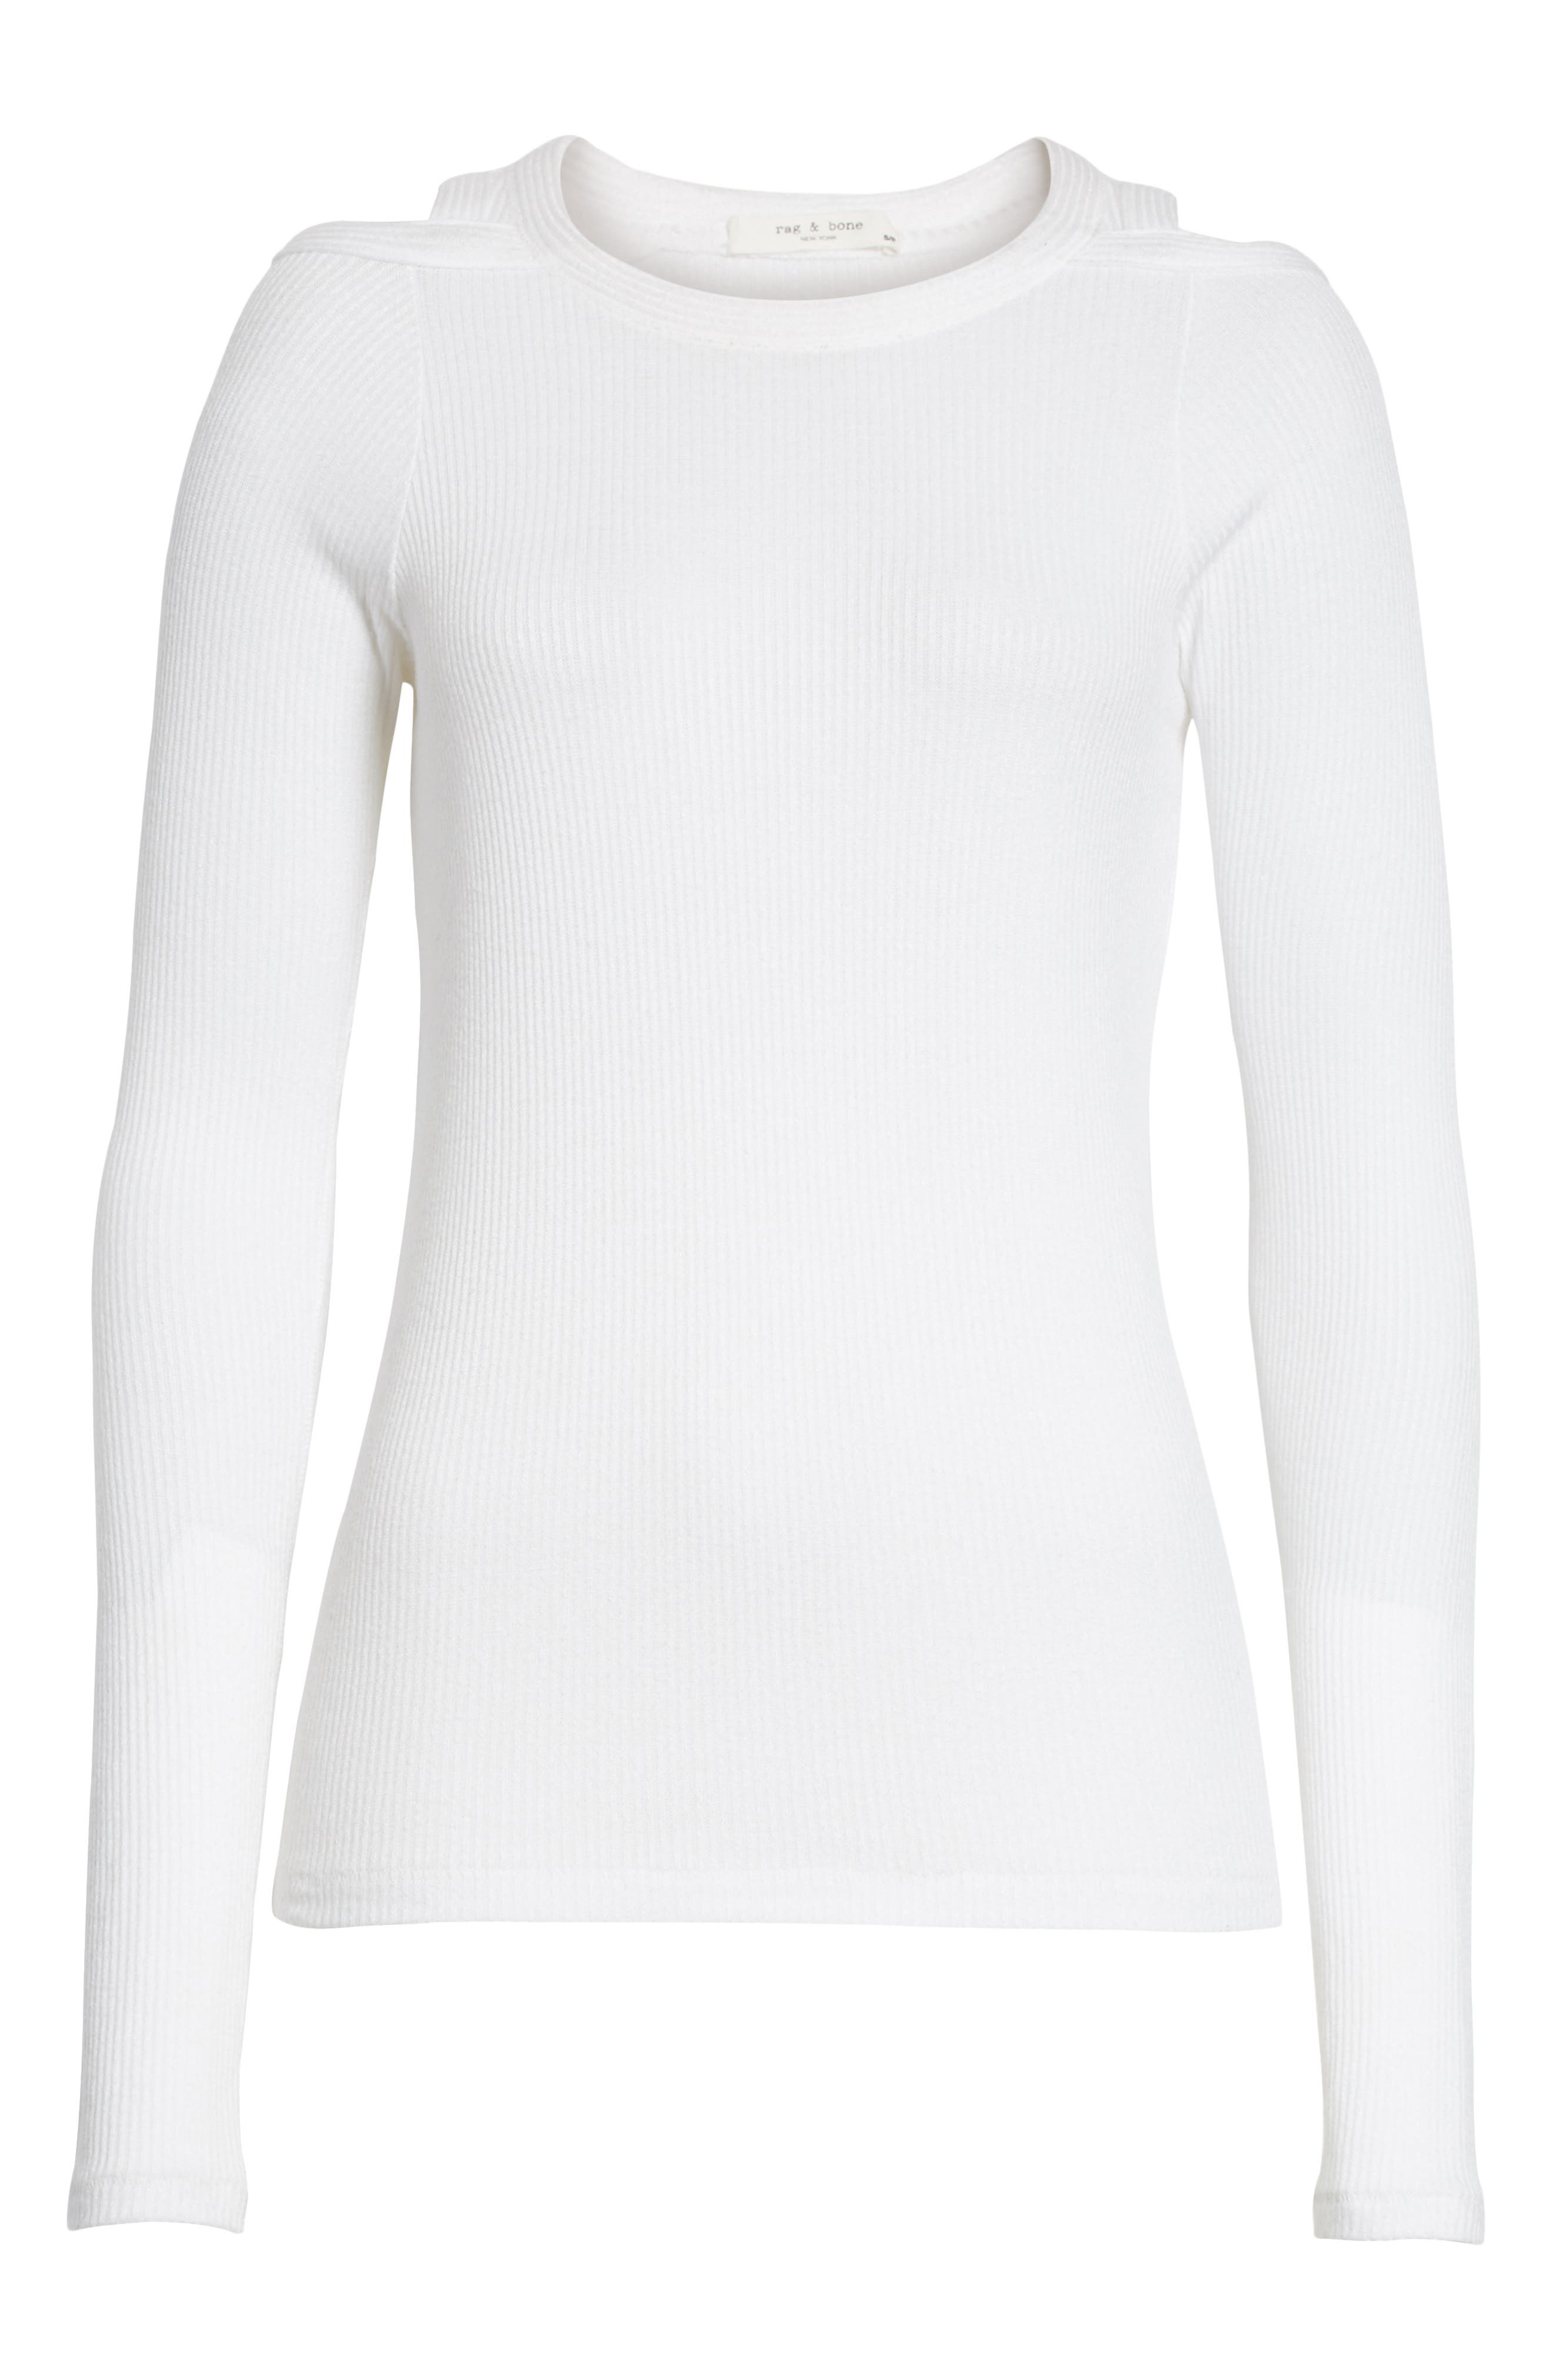 Rosalind Cutout Ribbed Top,                             Alternate thumbnail 6, color,                             White